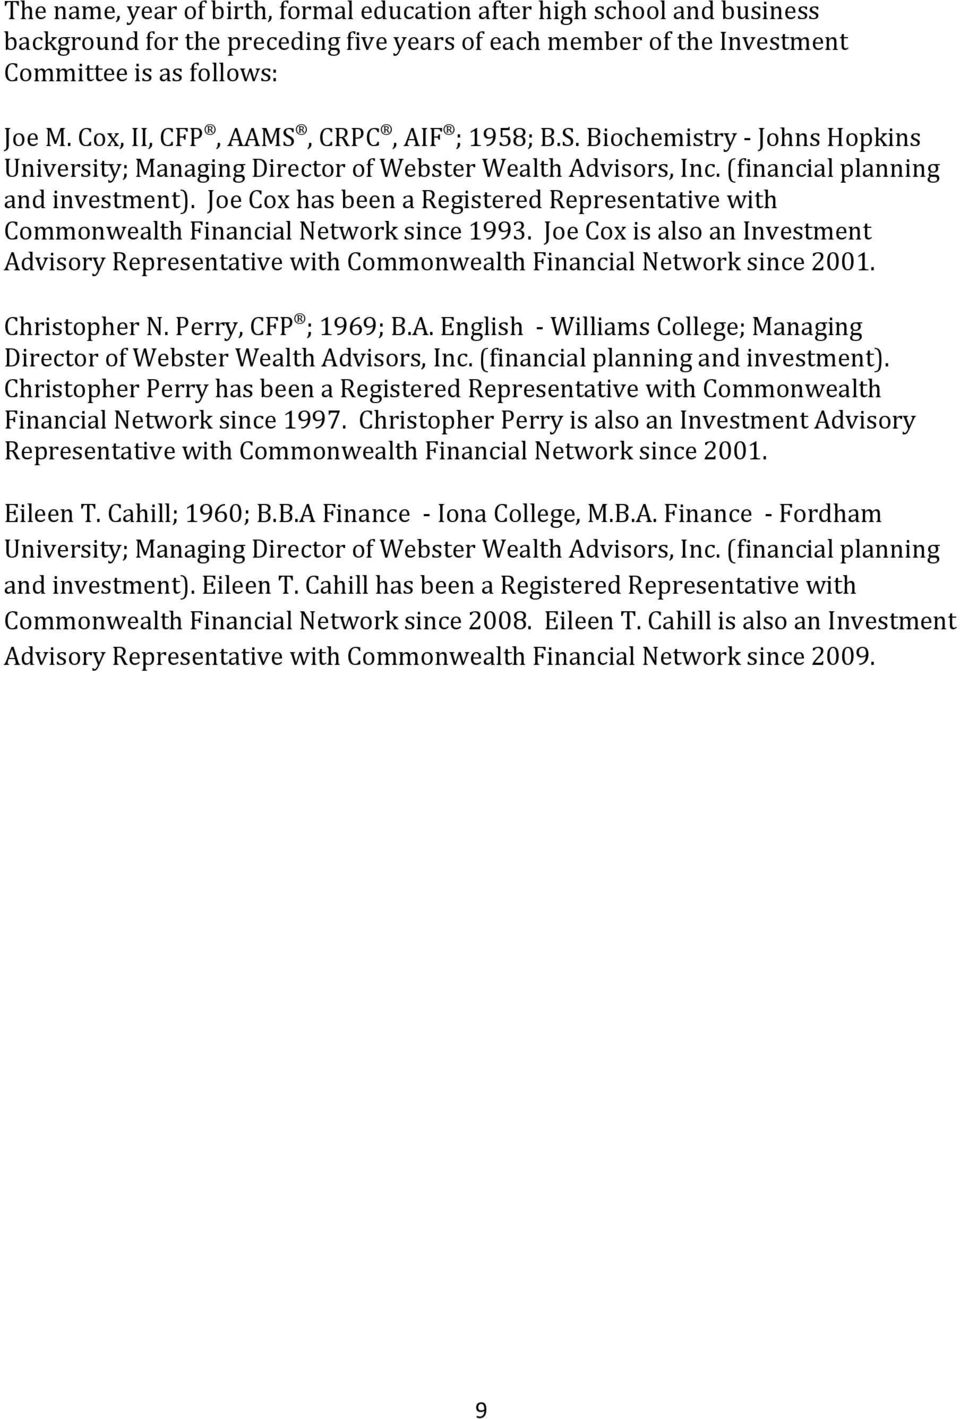 Joe Cox has been a Registered Representative with Commonwealth Financial Network since 1993. Joe Cox is also an Investment Advisory Representative with Commonwealth Financial Network since 2001.